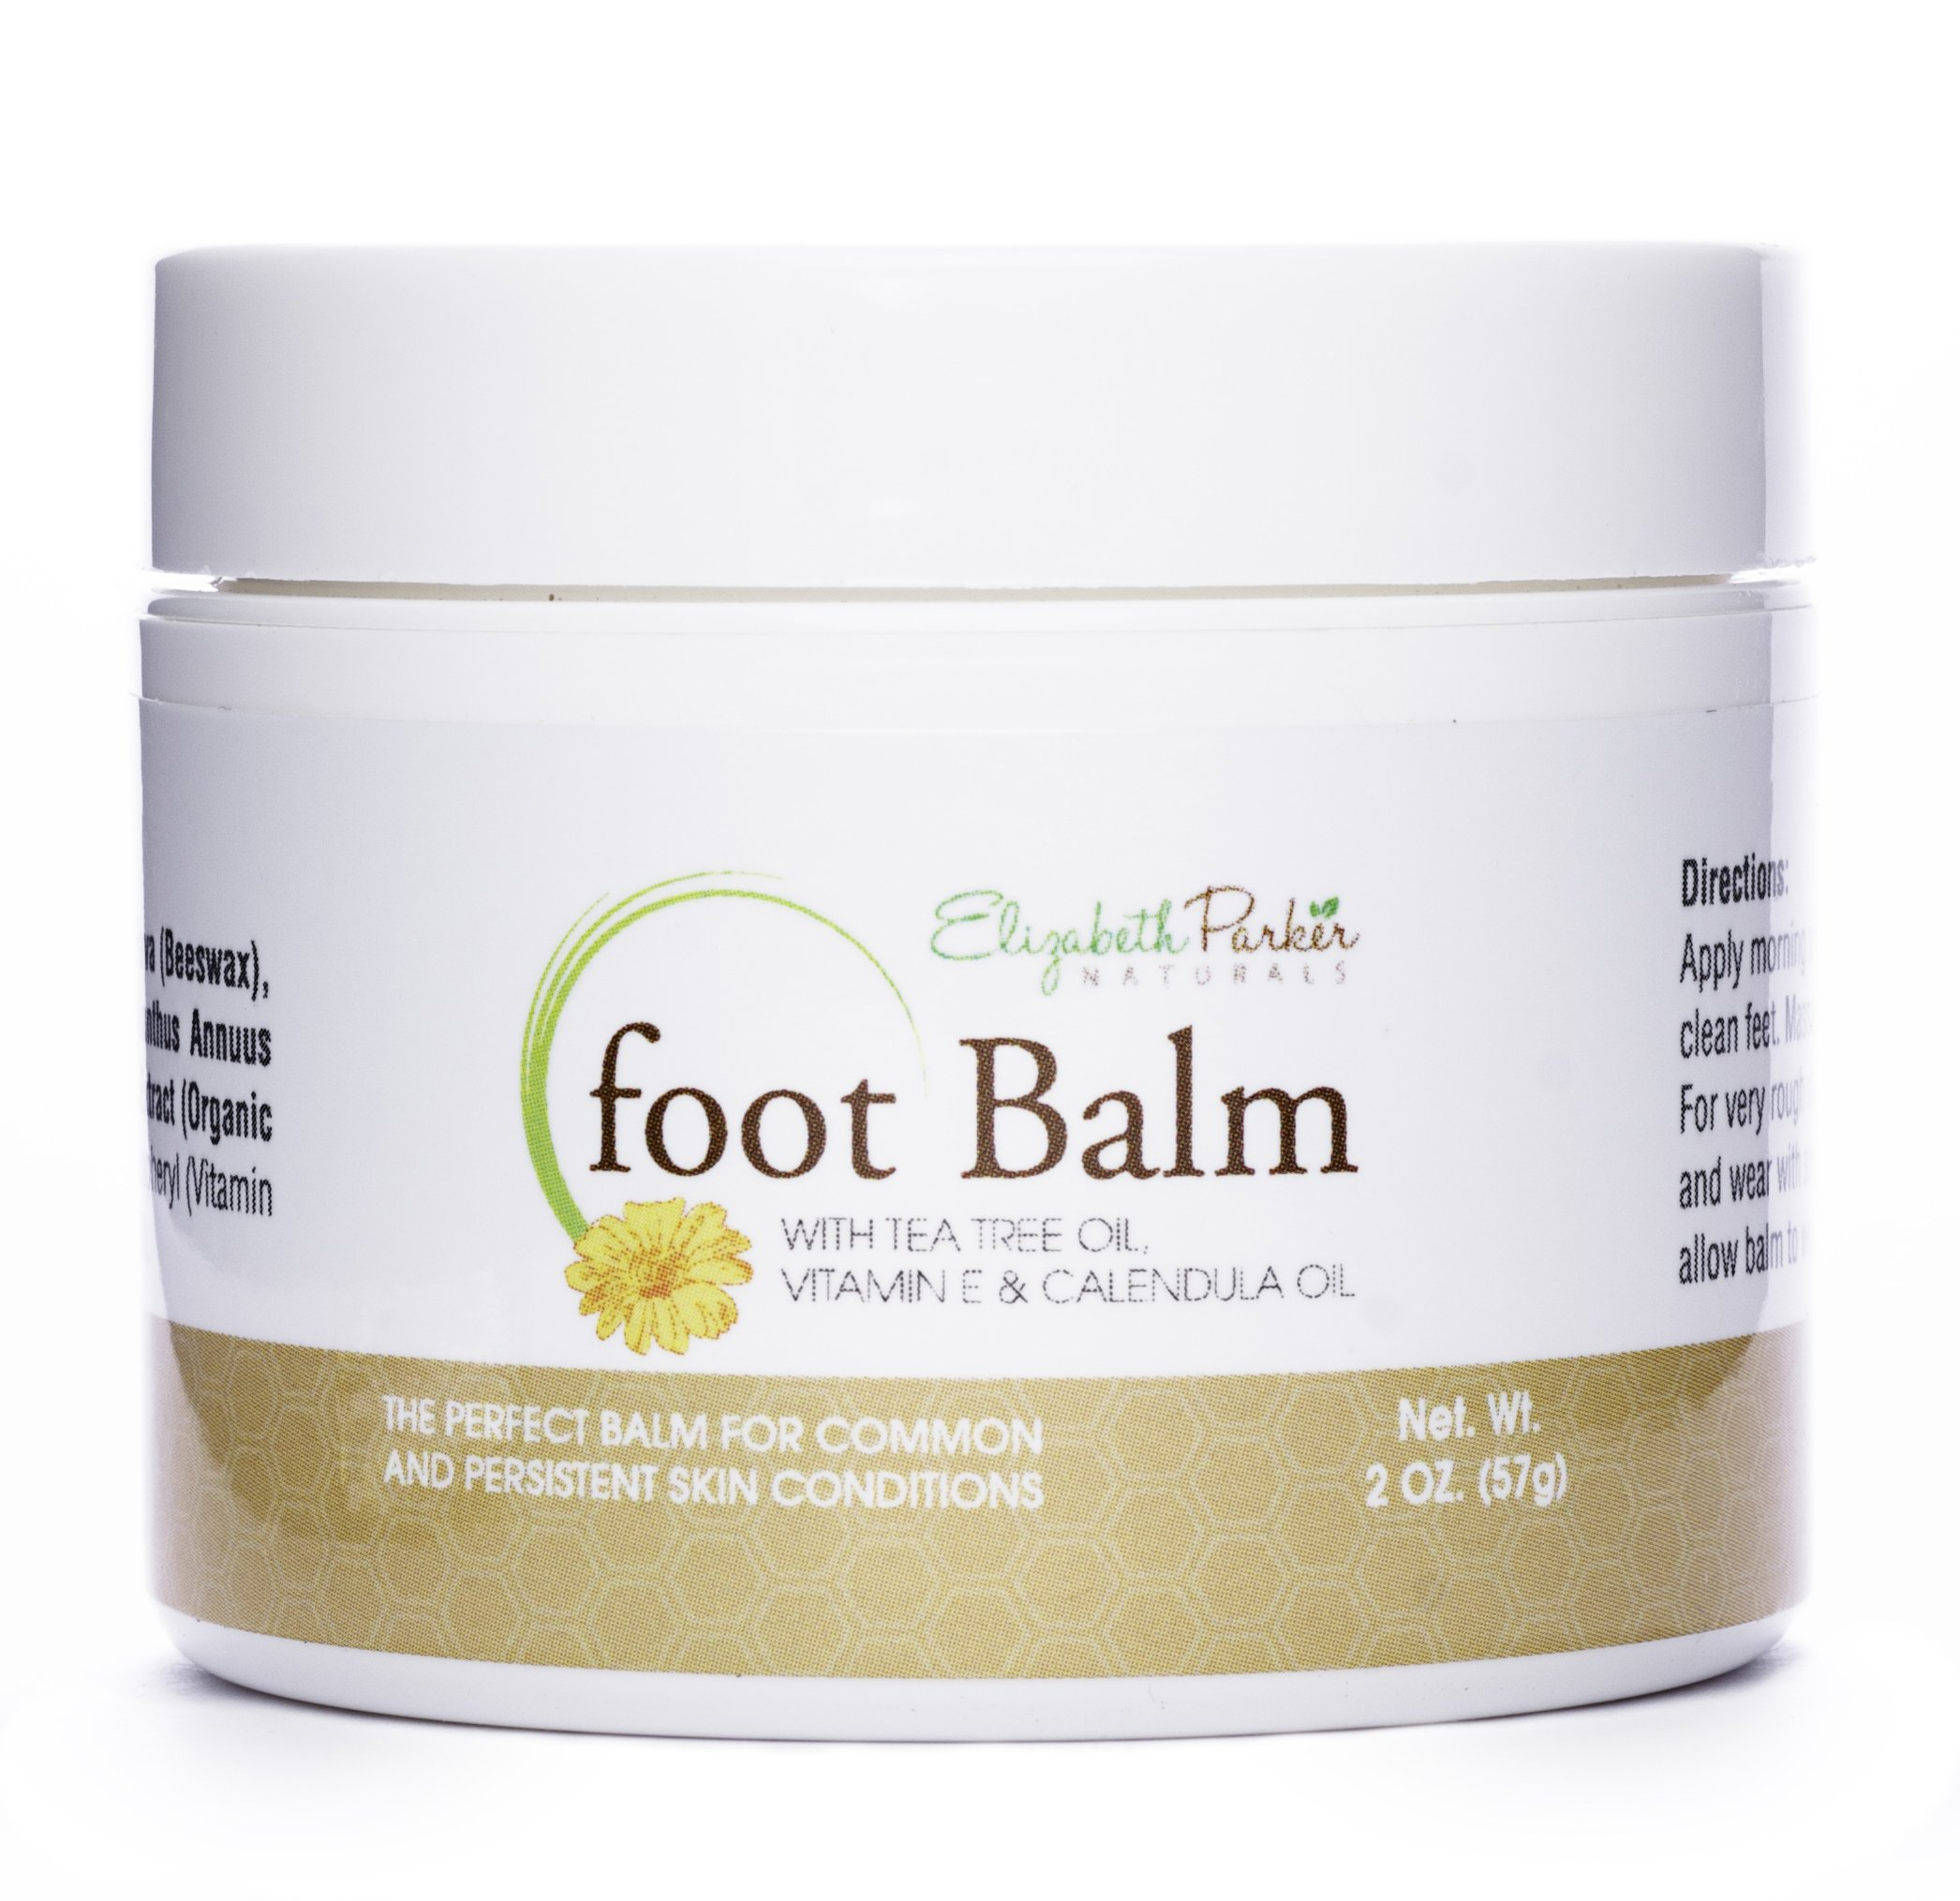 Elizabeth Parker Naturals Foot Balm for Dry Cracked Feet and Heels with Tea Tree Oil - For Men and Women - All Natural Ingredients 2oz